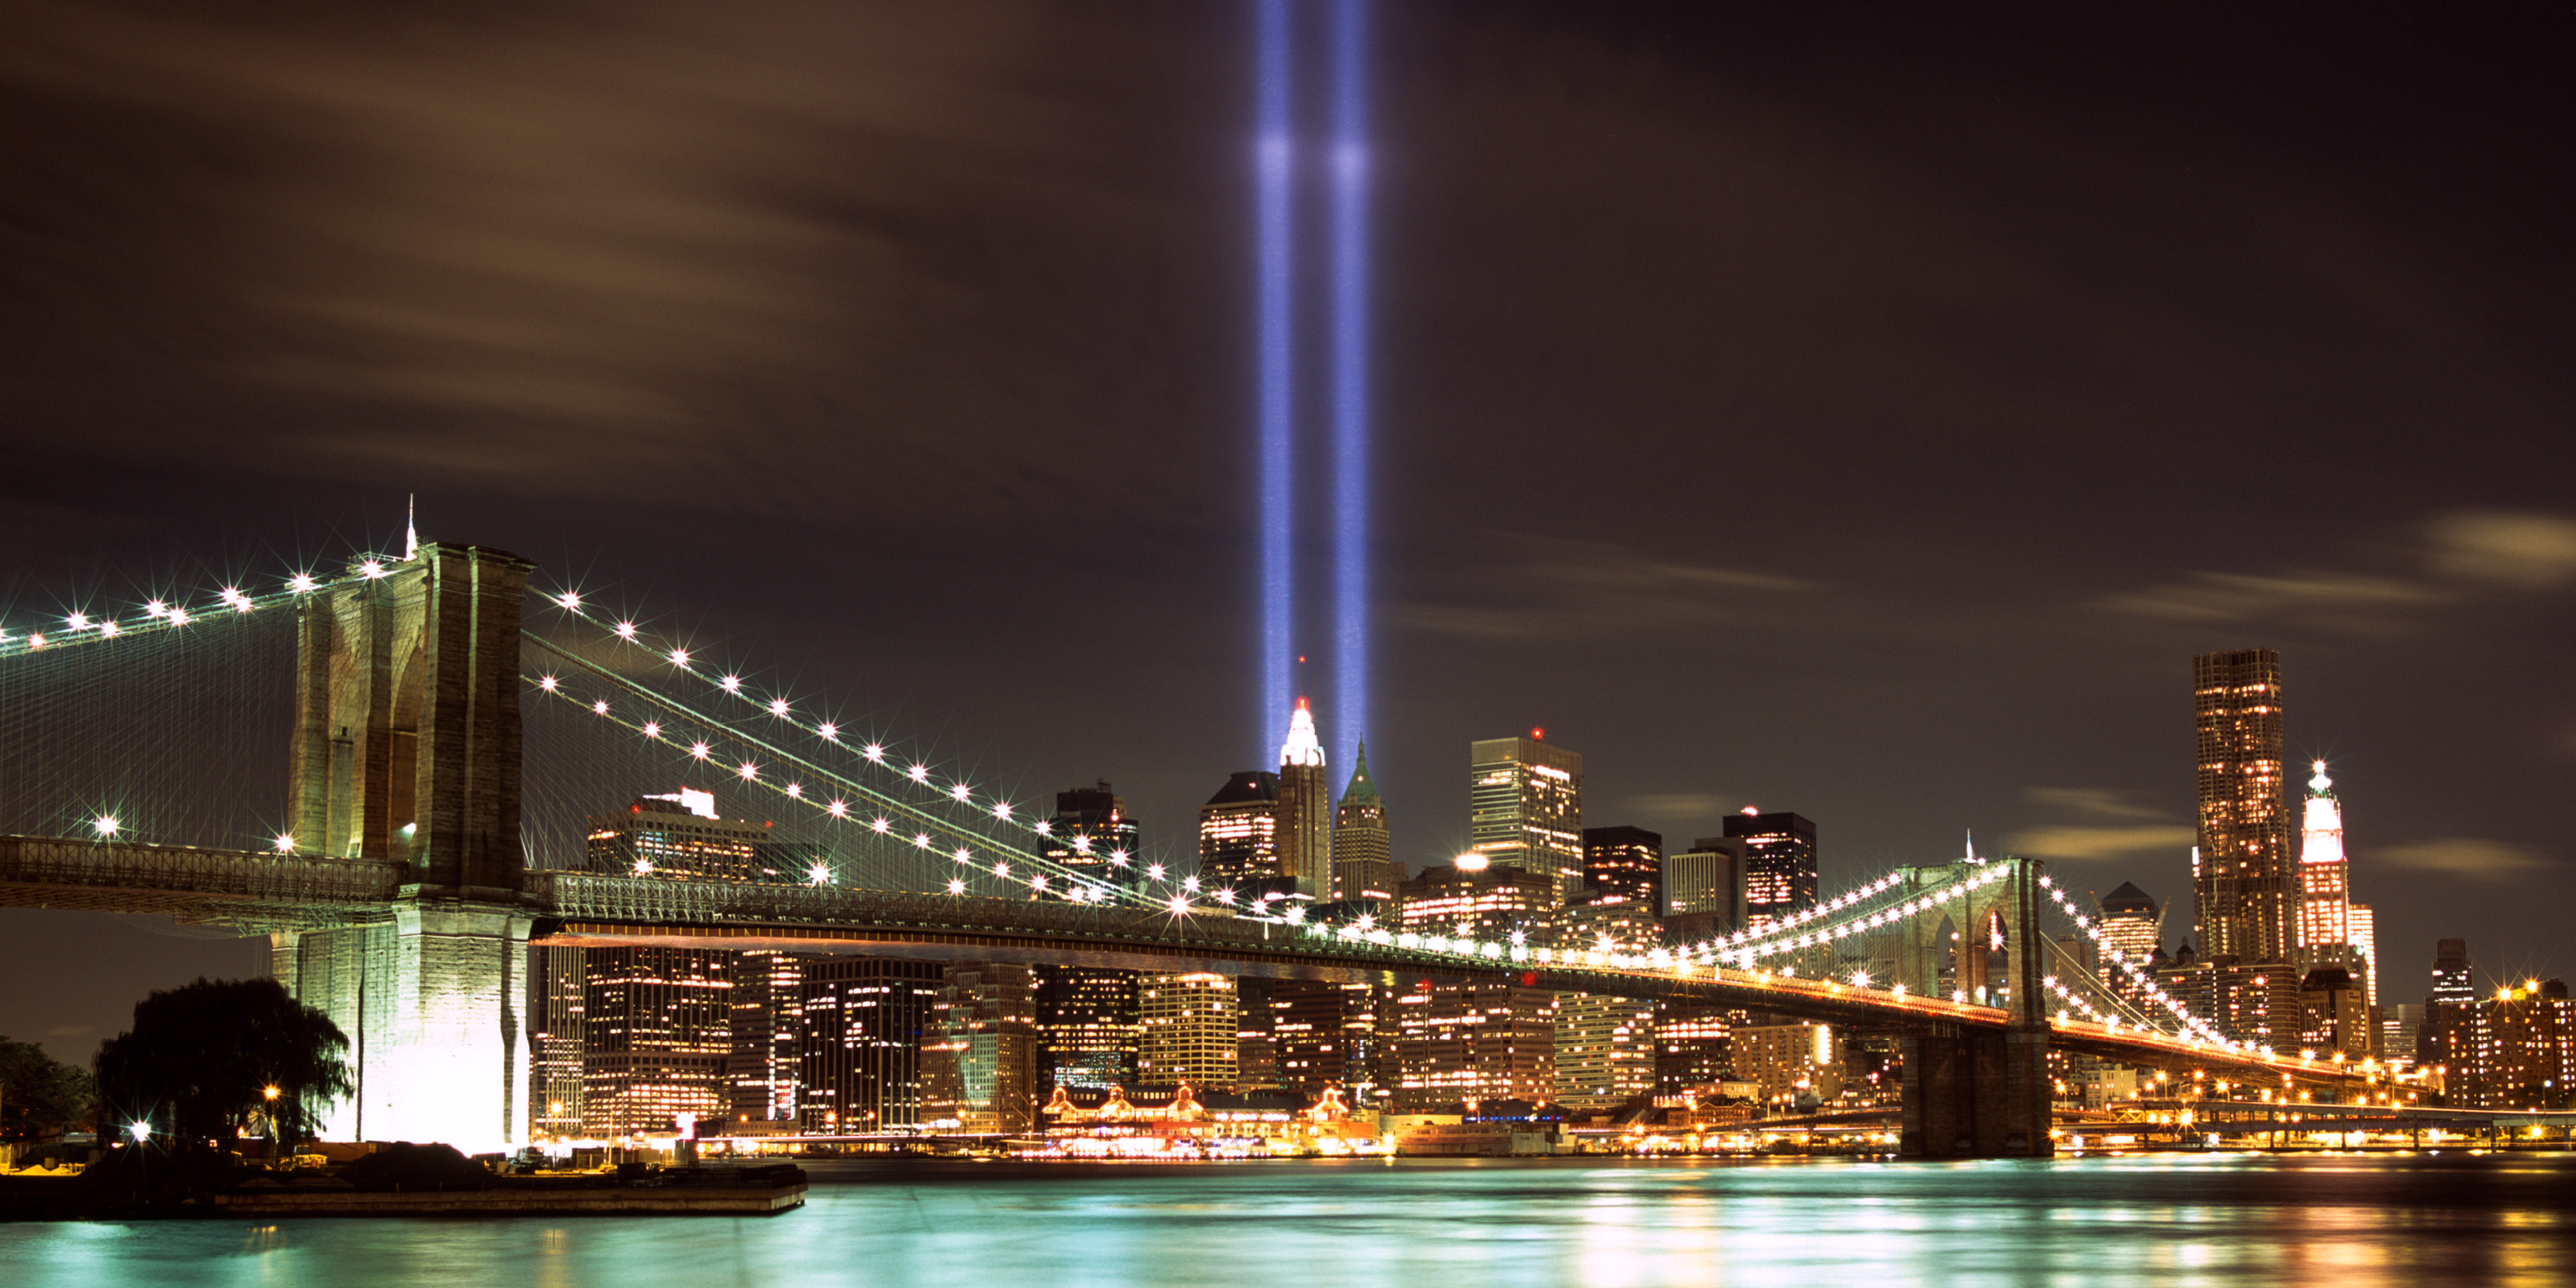 Tribute in Light spotlights illuminate the sky for September 11th anniversary